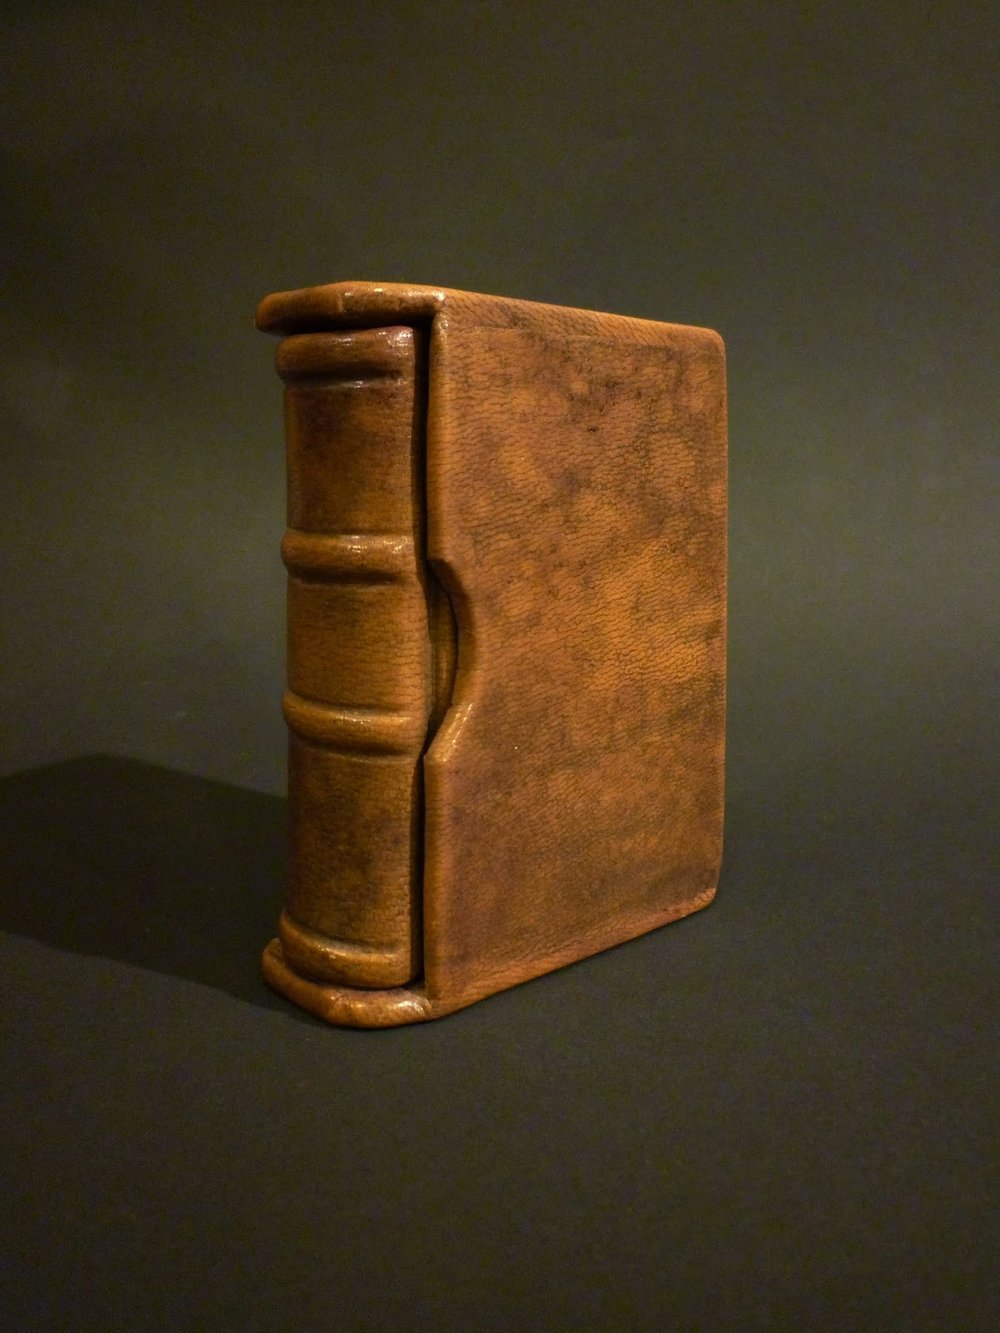 miniature blank book 2x3 1.jpg